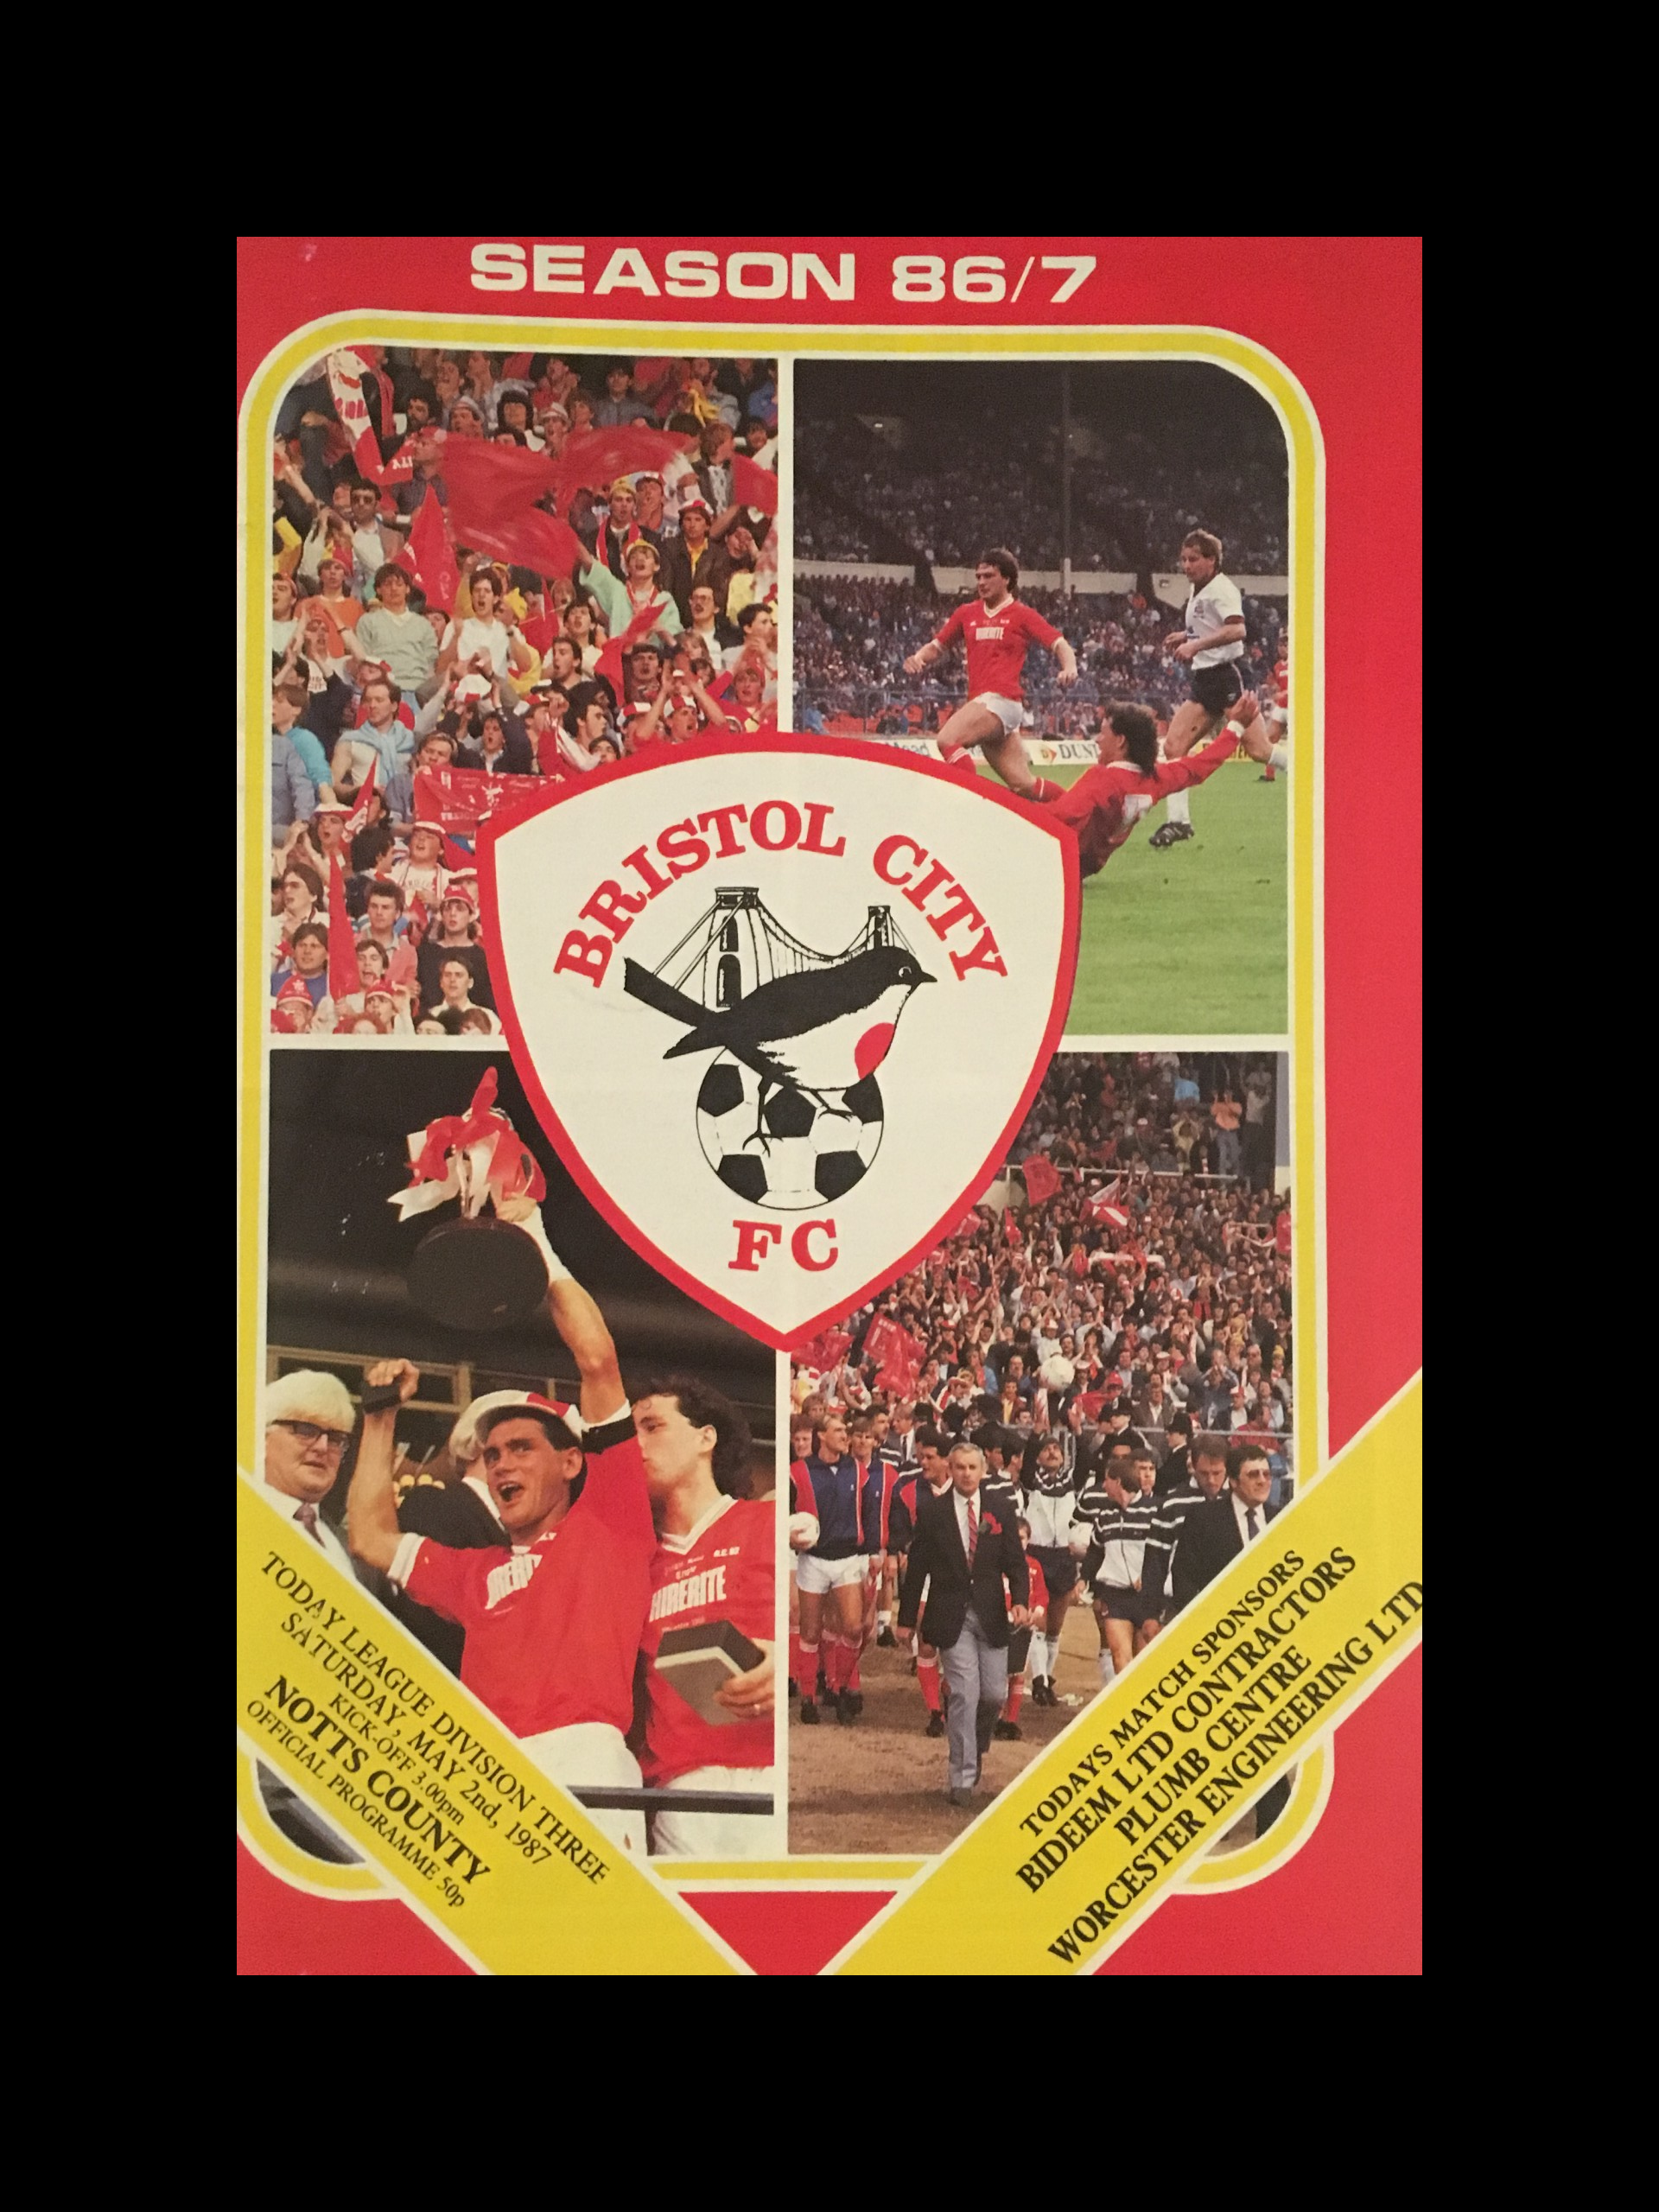 Bristol City v Notts County 02-05-87 Programme